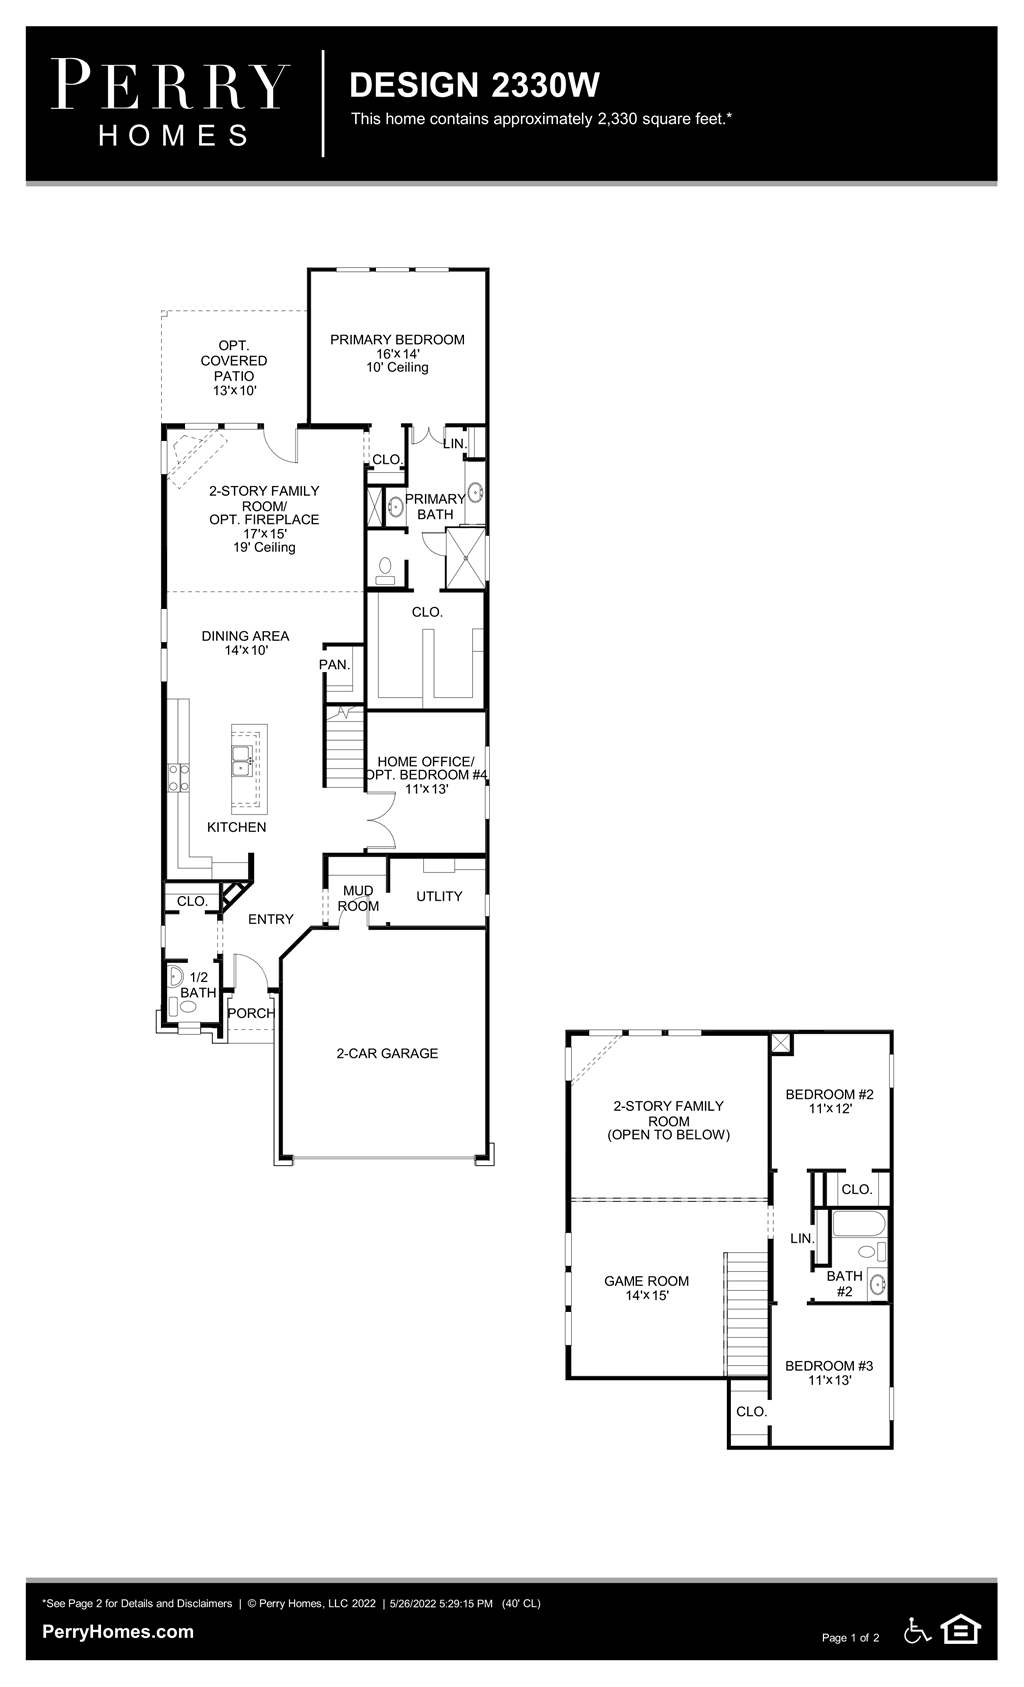 Floor Plan for 2330W